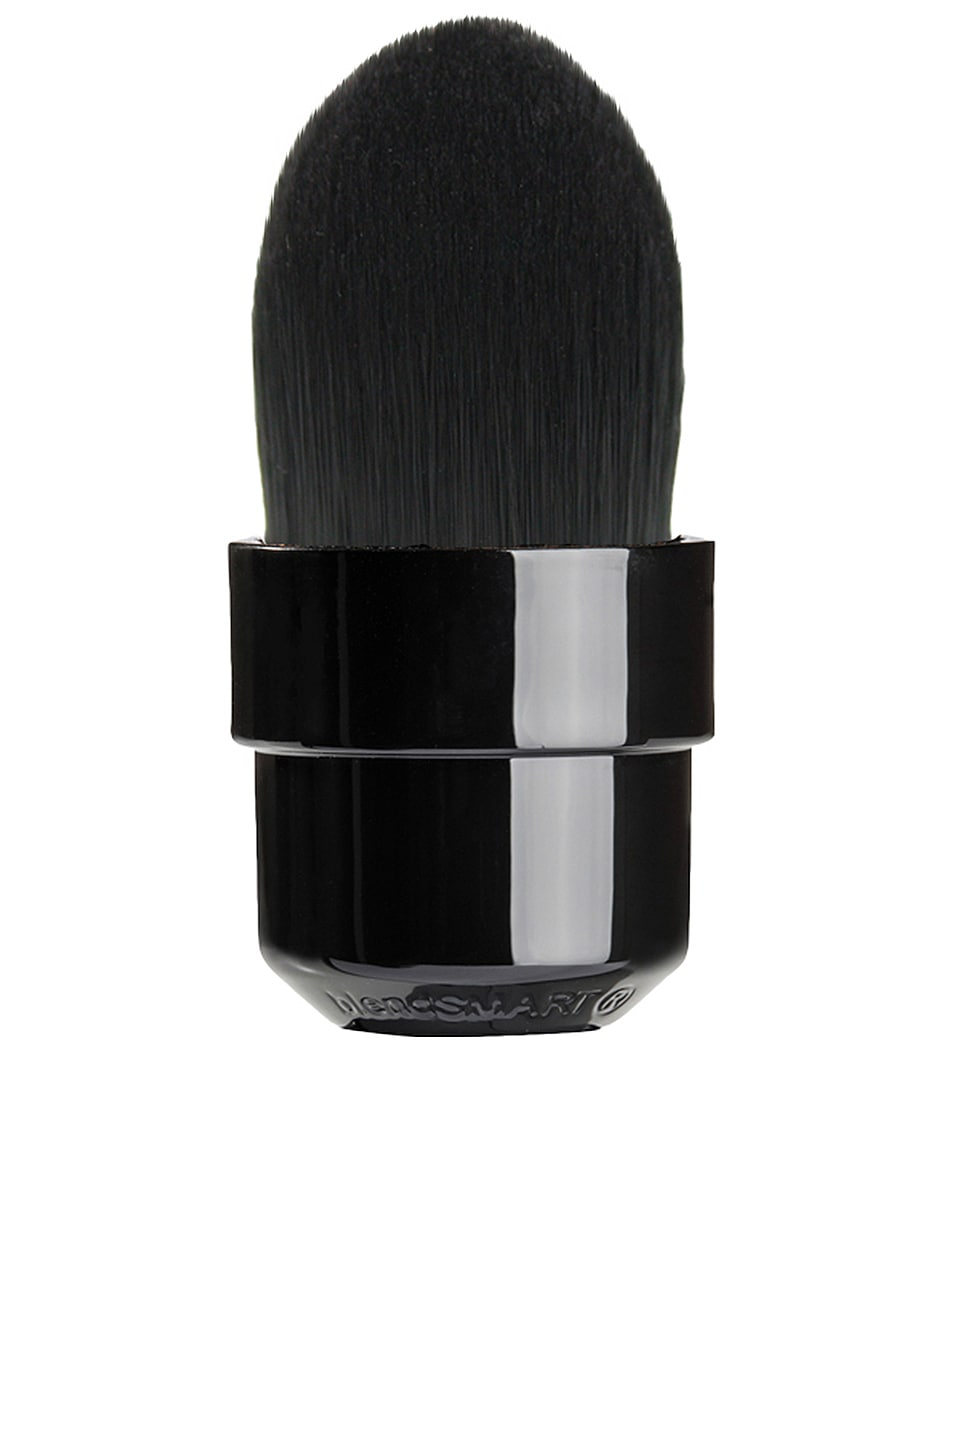 BLENDSMART2 DEFINER BRUSH HEAD